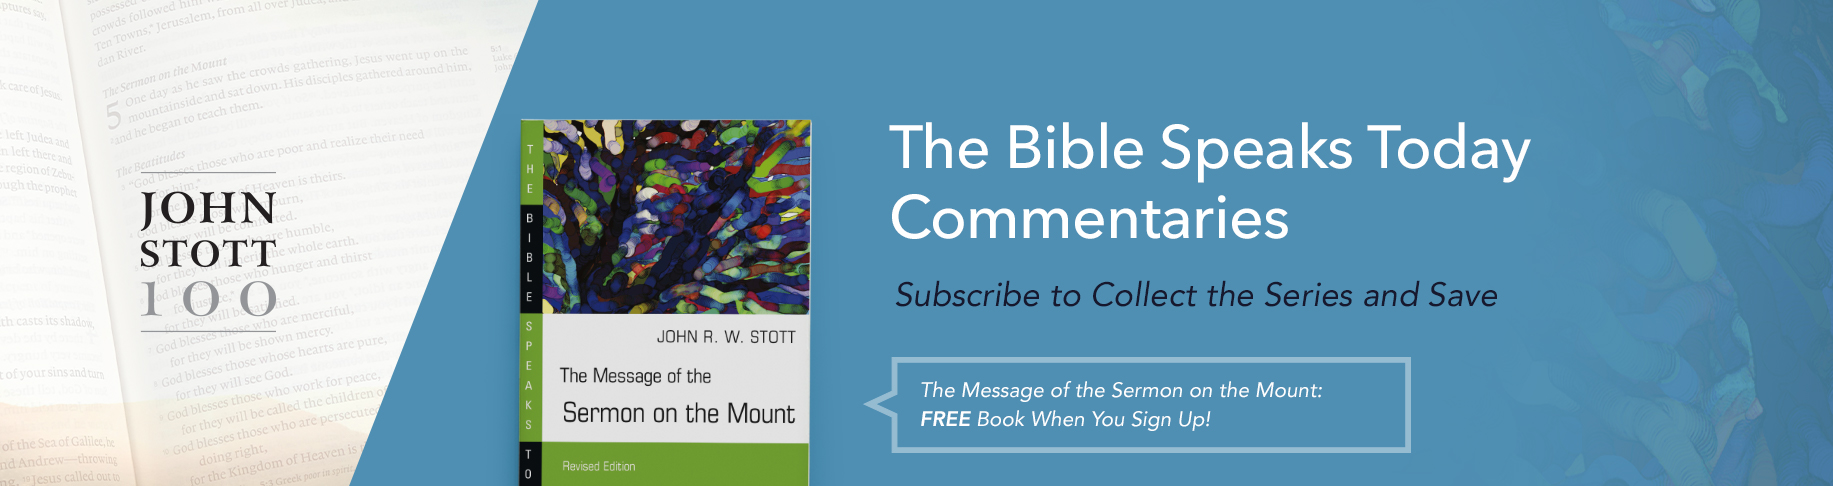 Bible Speaks Today Commentary Program